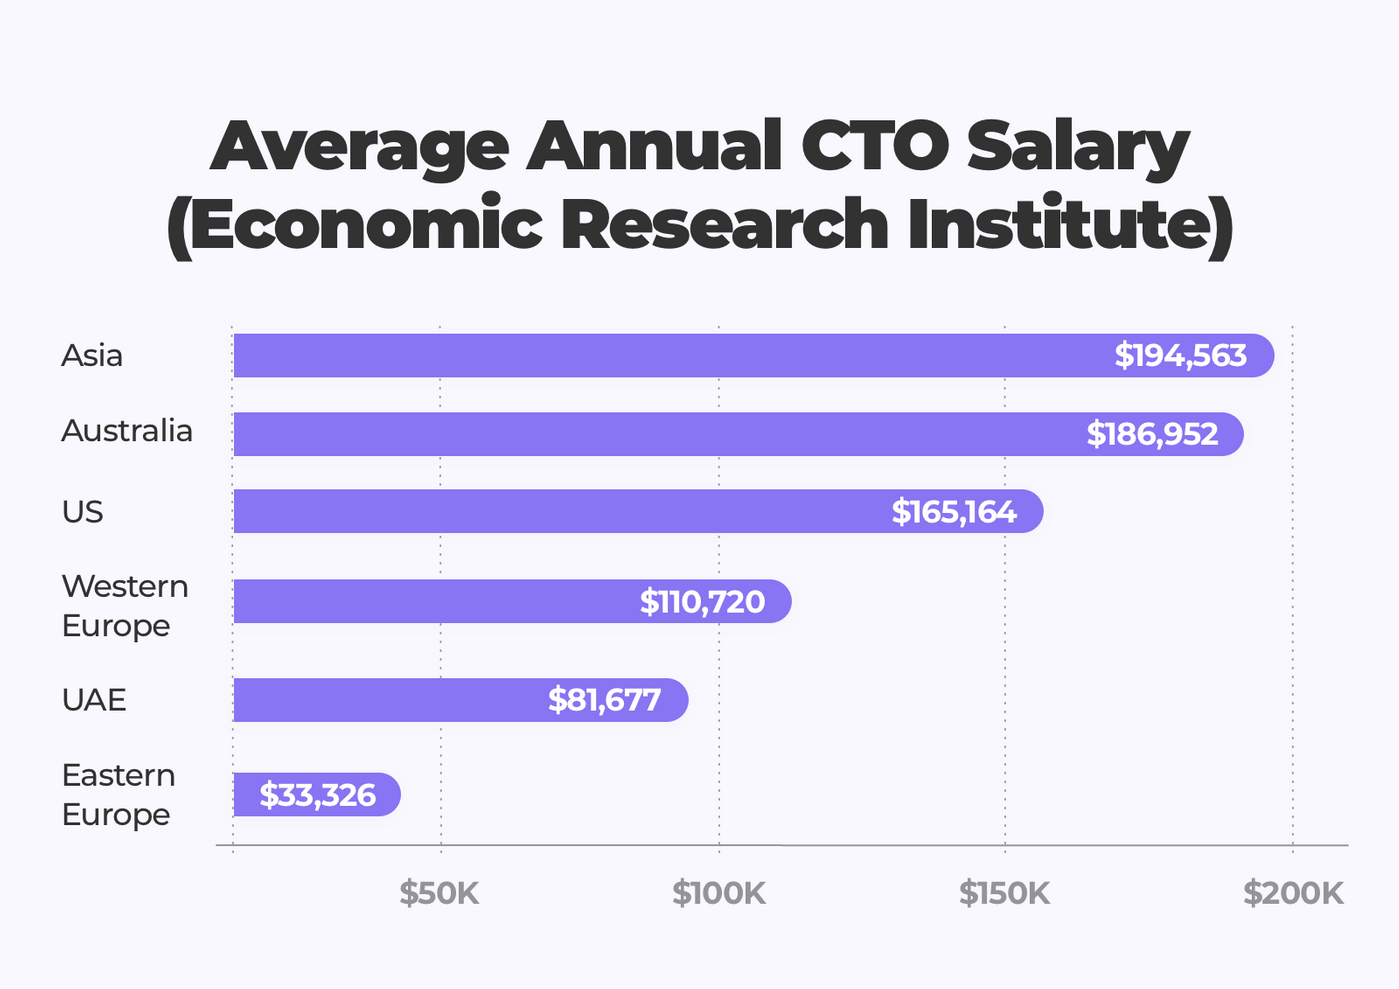 Average annual CTO salary